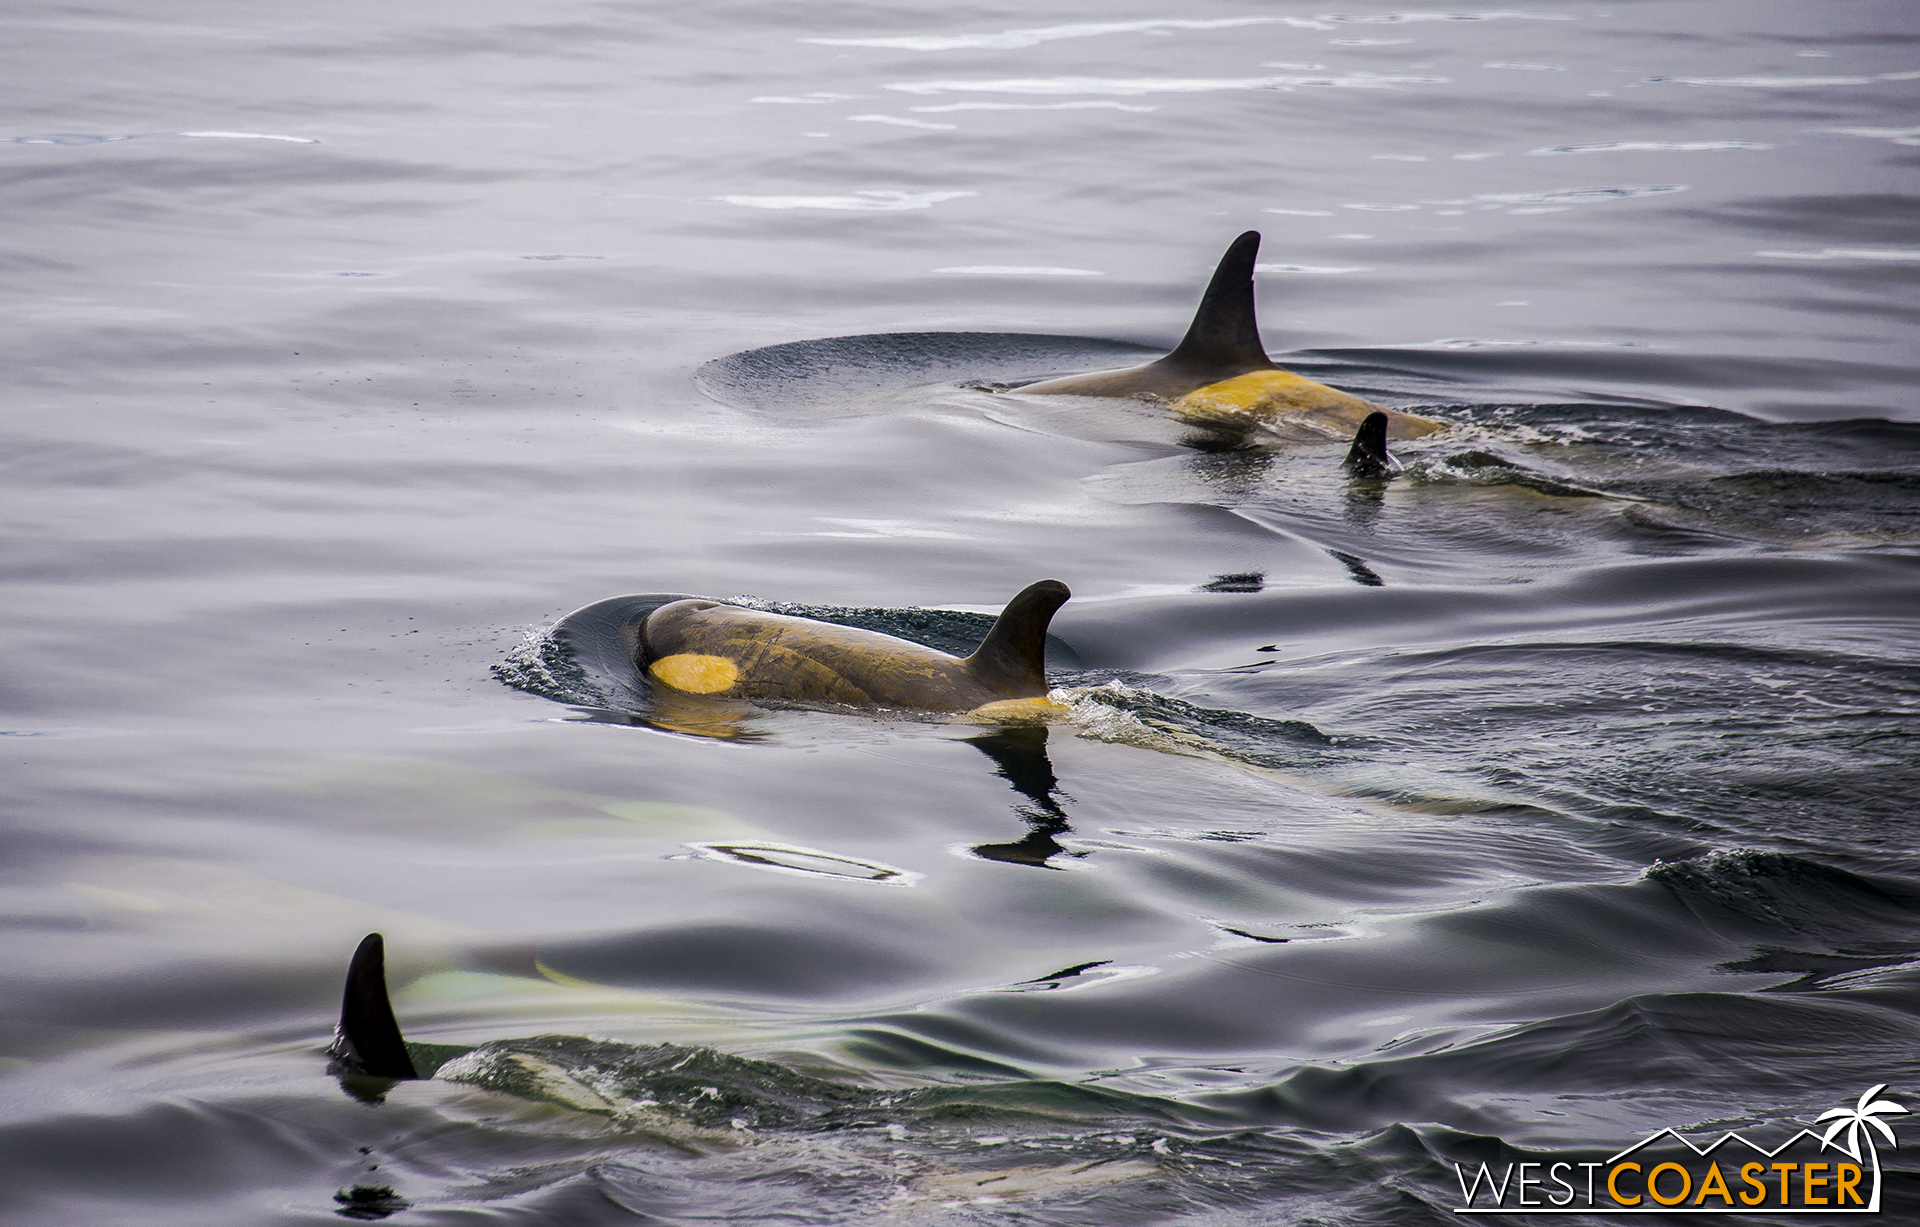 Orcas in Antarctica are more black and yellow (black and yellow) than black and white. The coloring is due to an algal growth on their skin while they're in Antarctic waters.